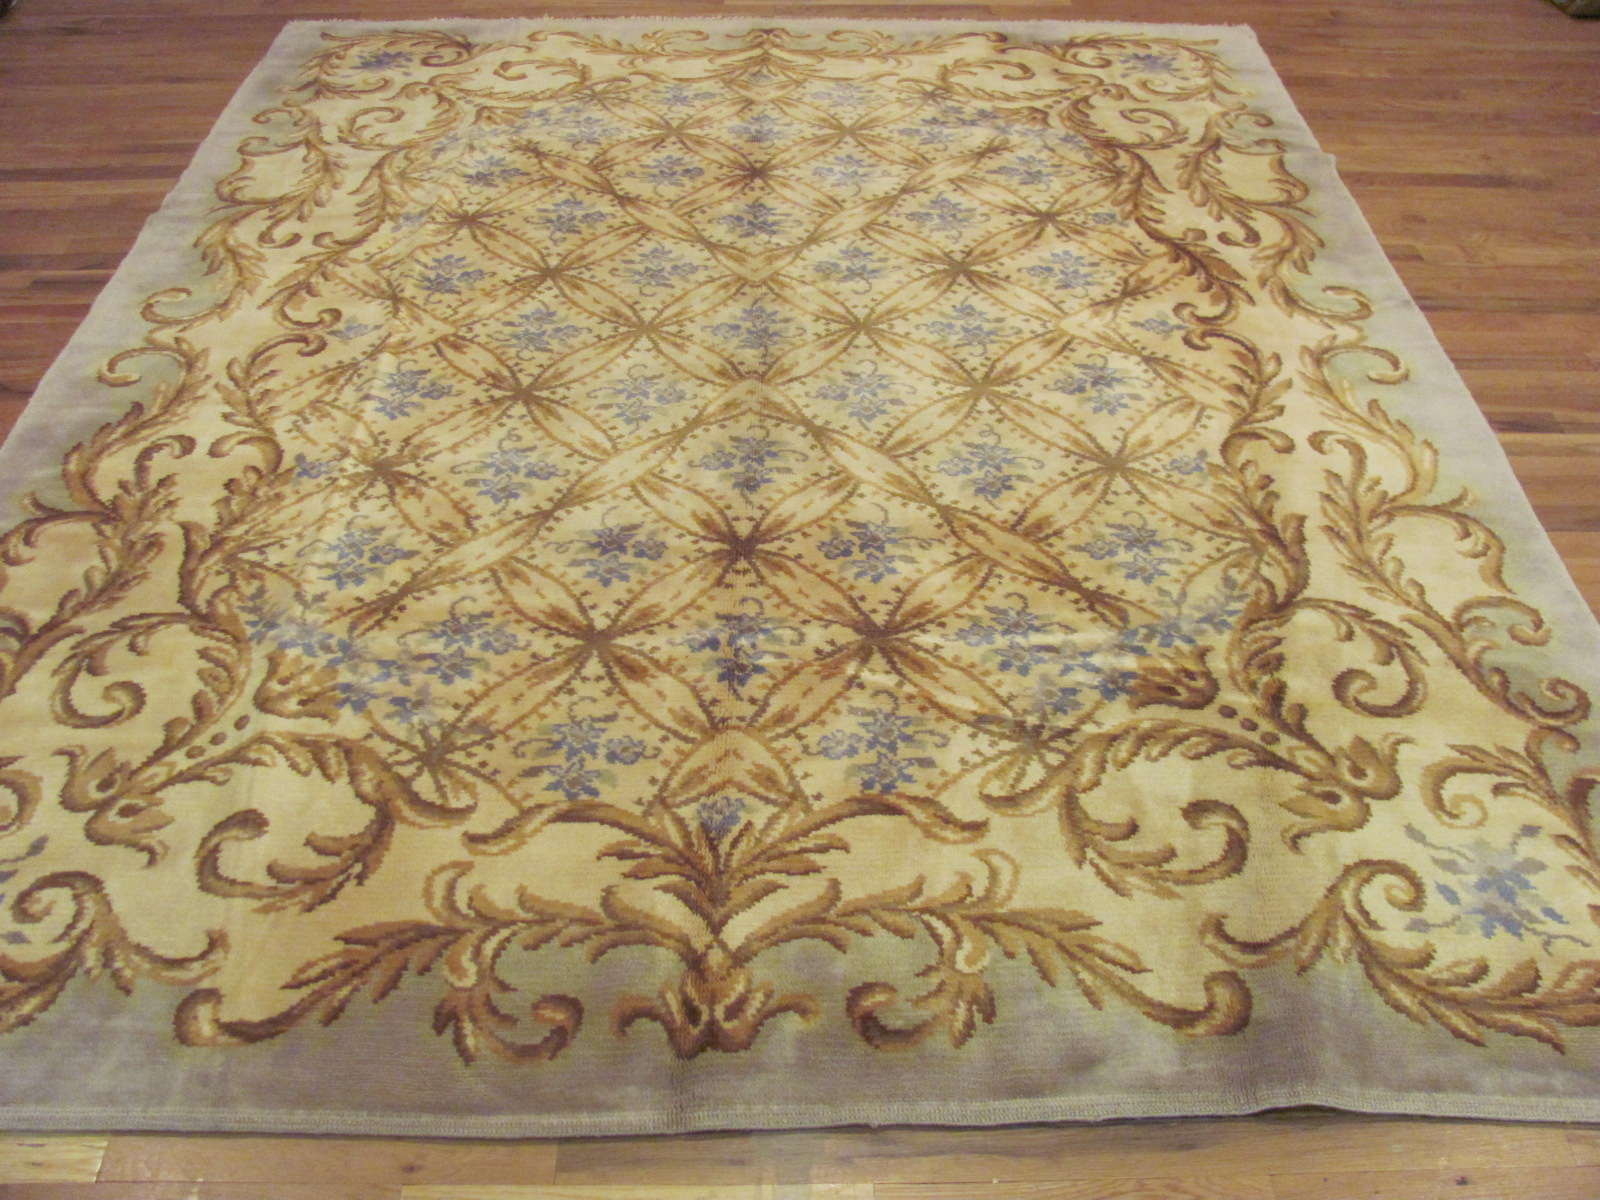 Spanish Carpet | Handmade | Circa 1920s